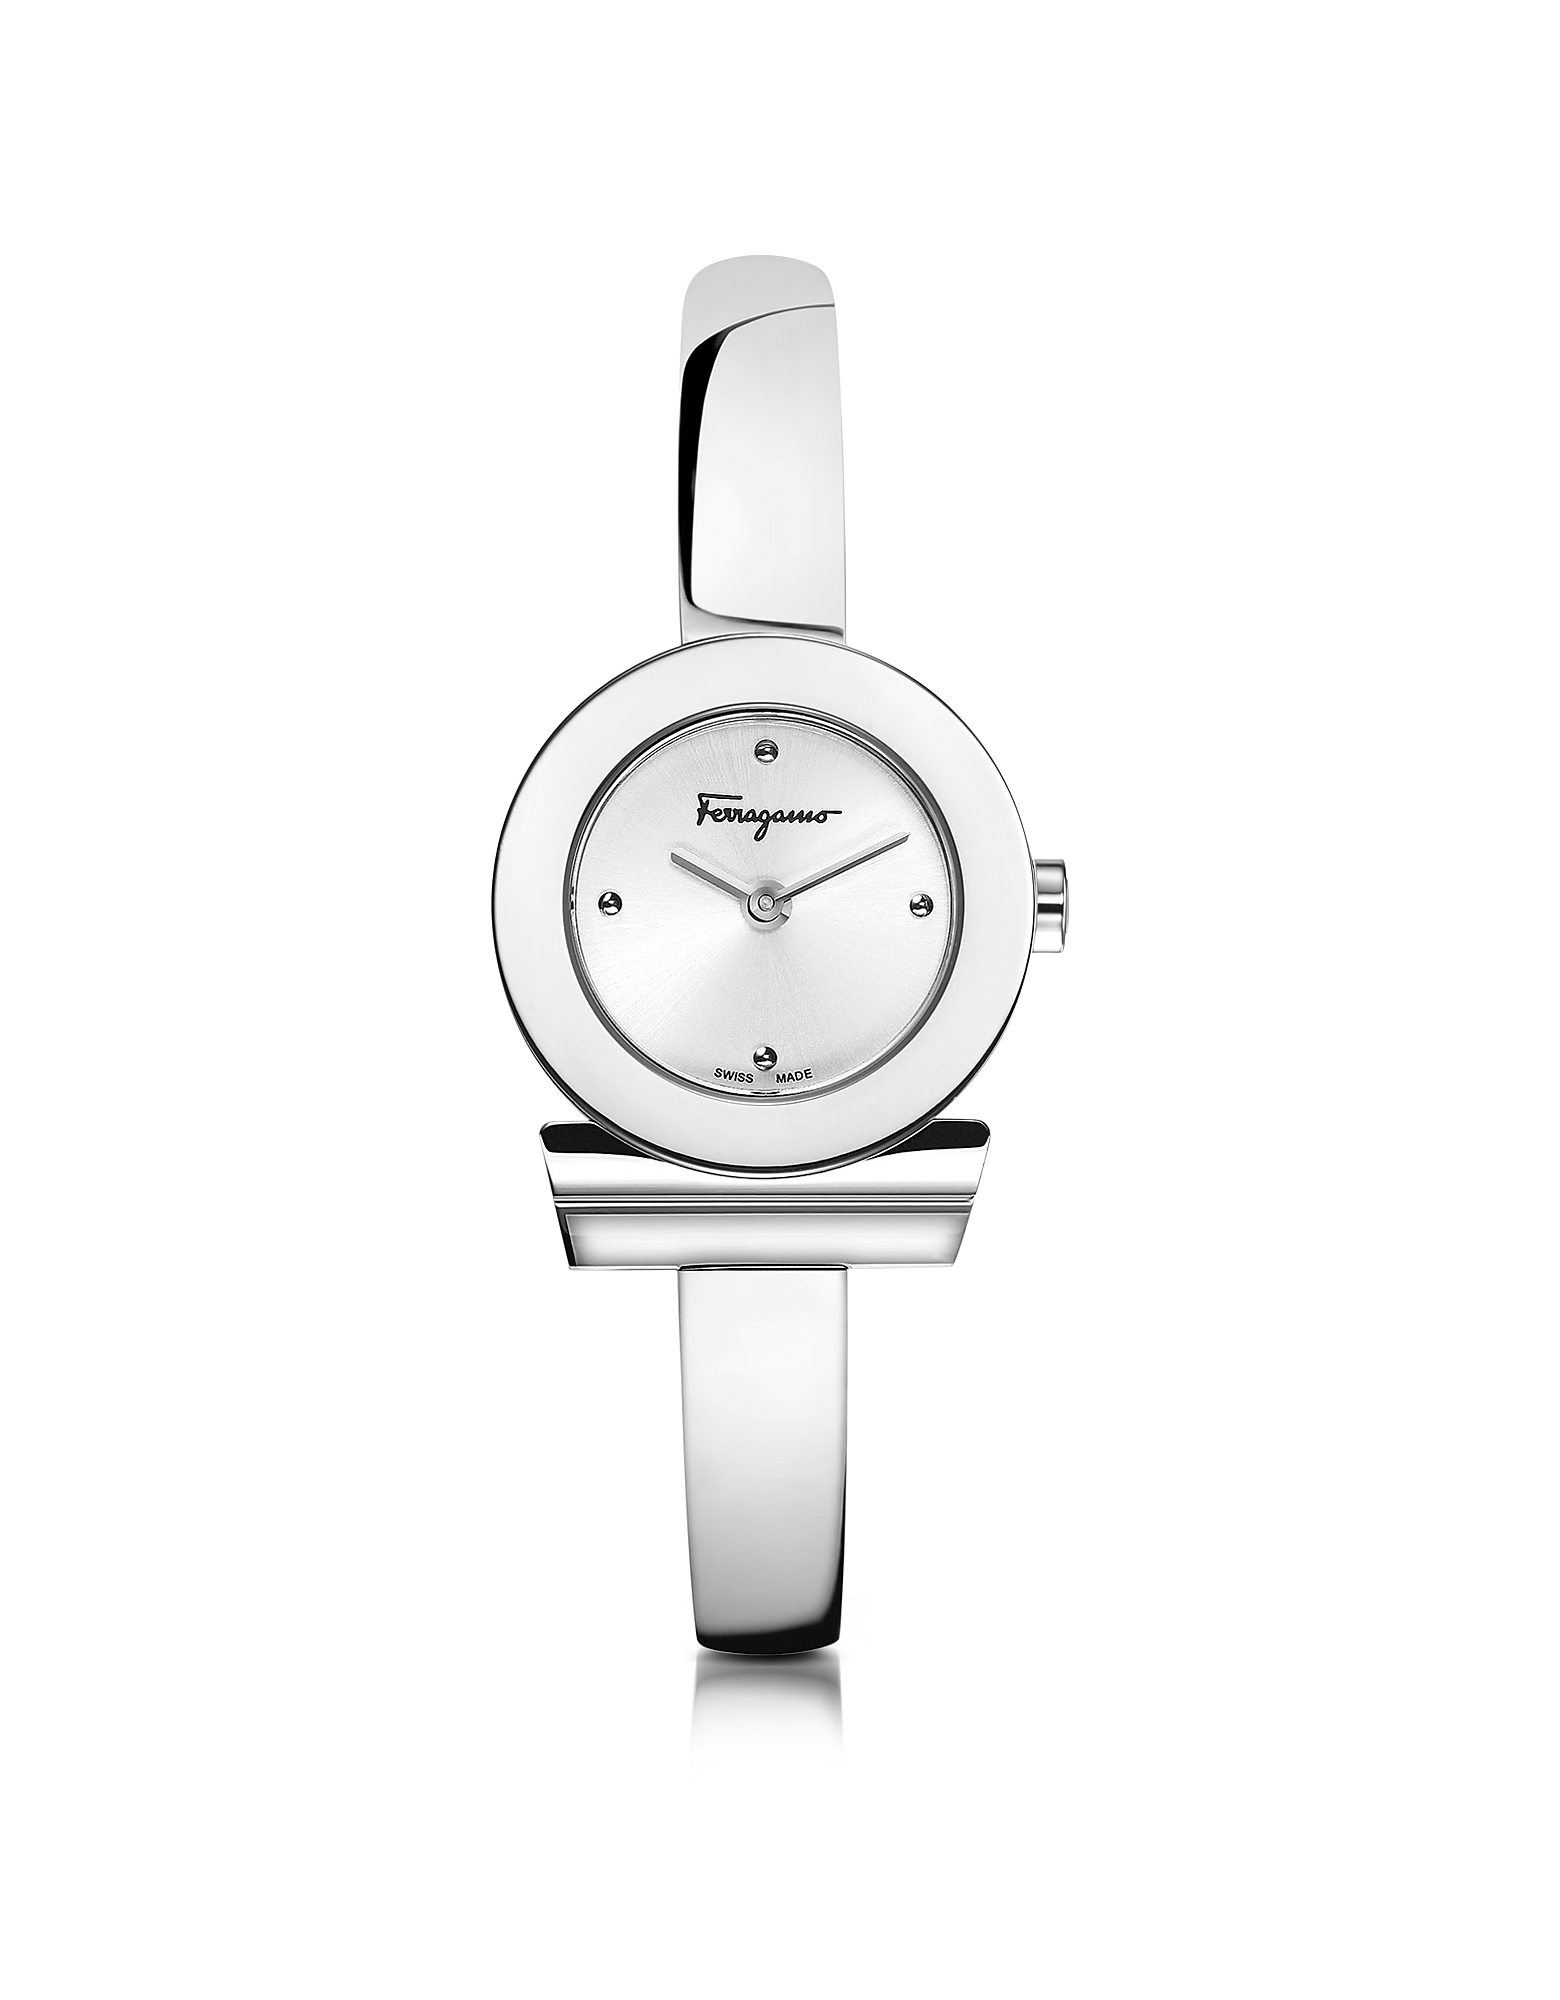 Salvatore Ferragamo Women's Watches, Gancino Silver Stainless Steel Women's Watch